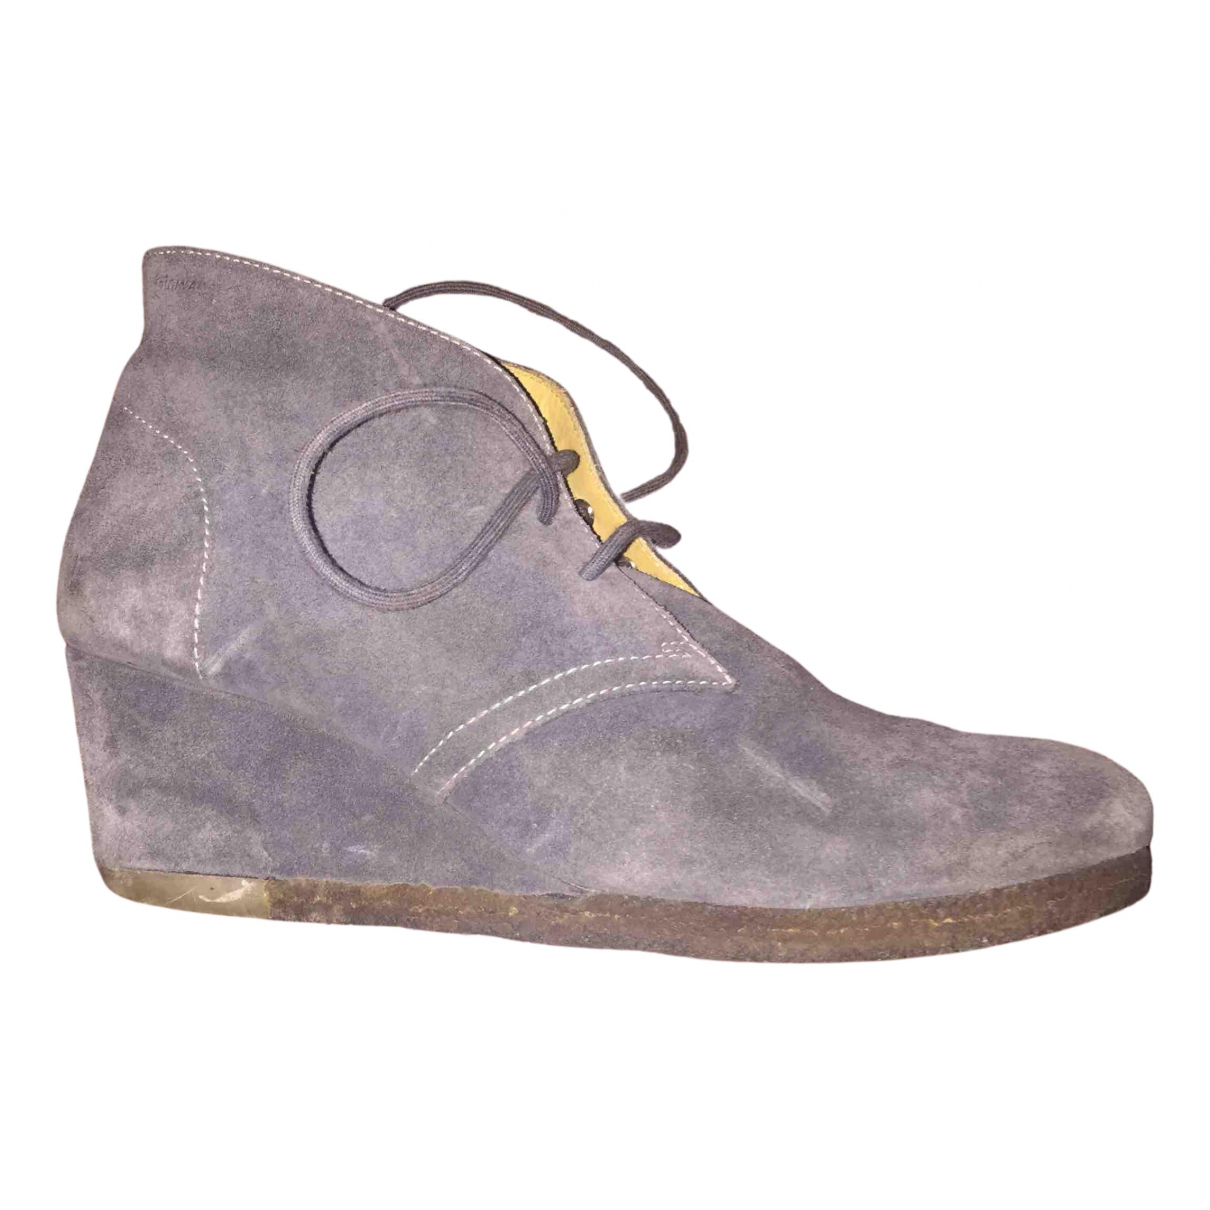 Clarks N Grey Suede Ankle boots for Women 39 EU